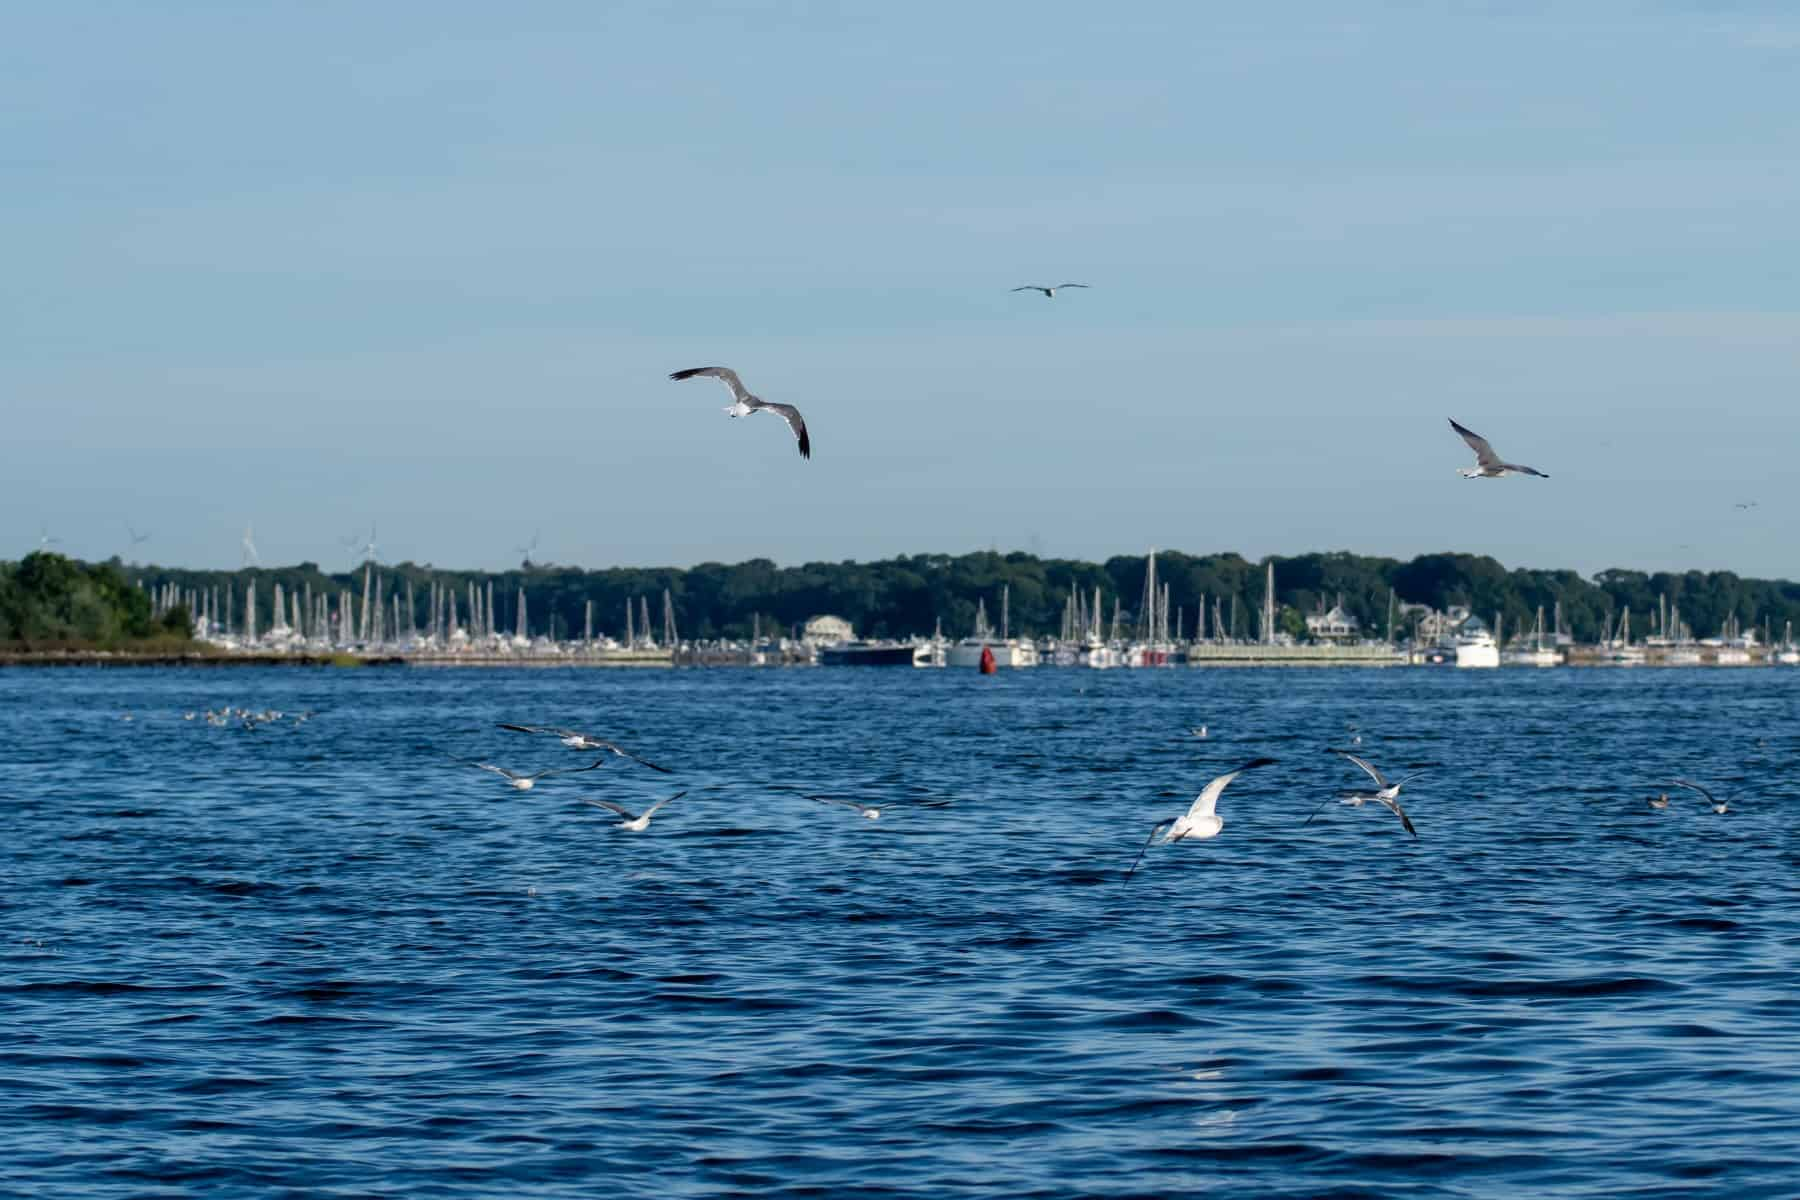 Seagulls Flying over the Water of the Greenwich Bay in East Greenwich Rhode Island